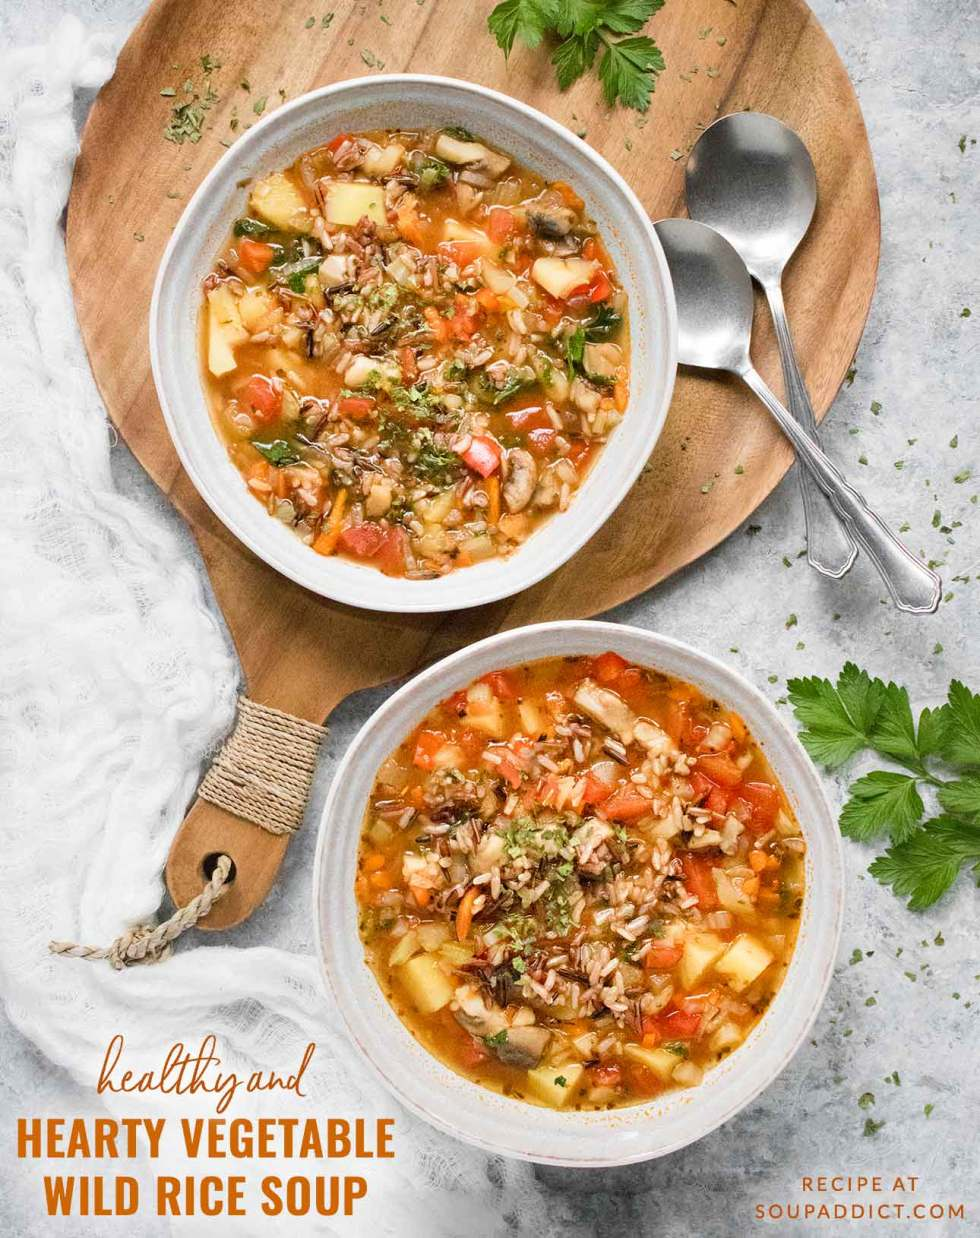 Hearty Vegetable Wild Rice Soup - Recipe at SoupAddict.com